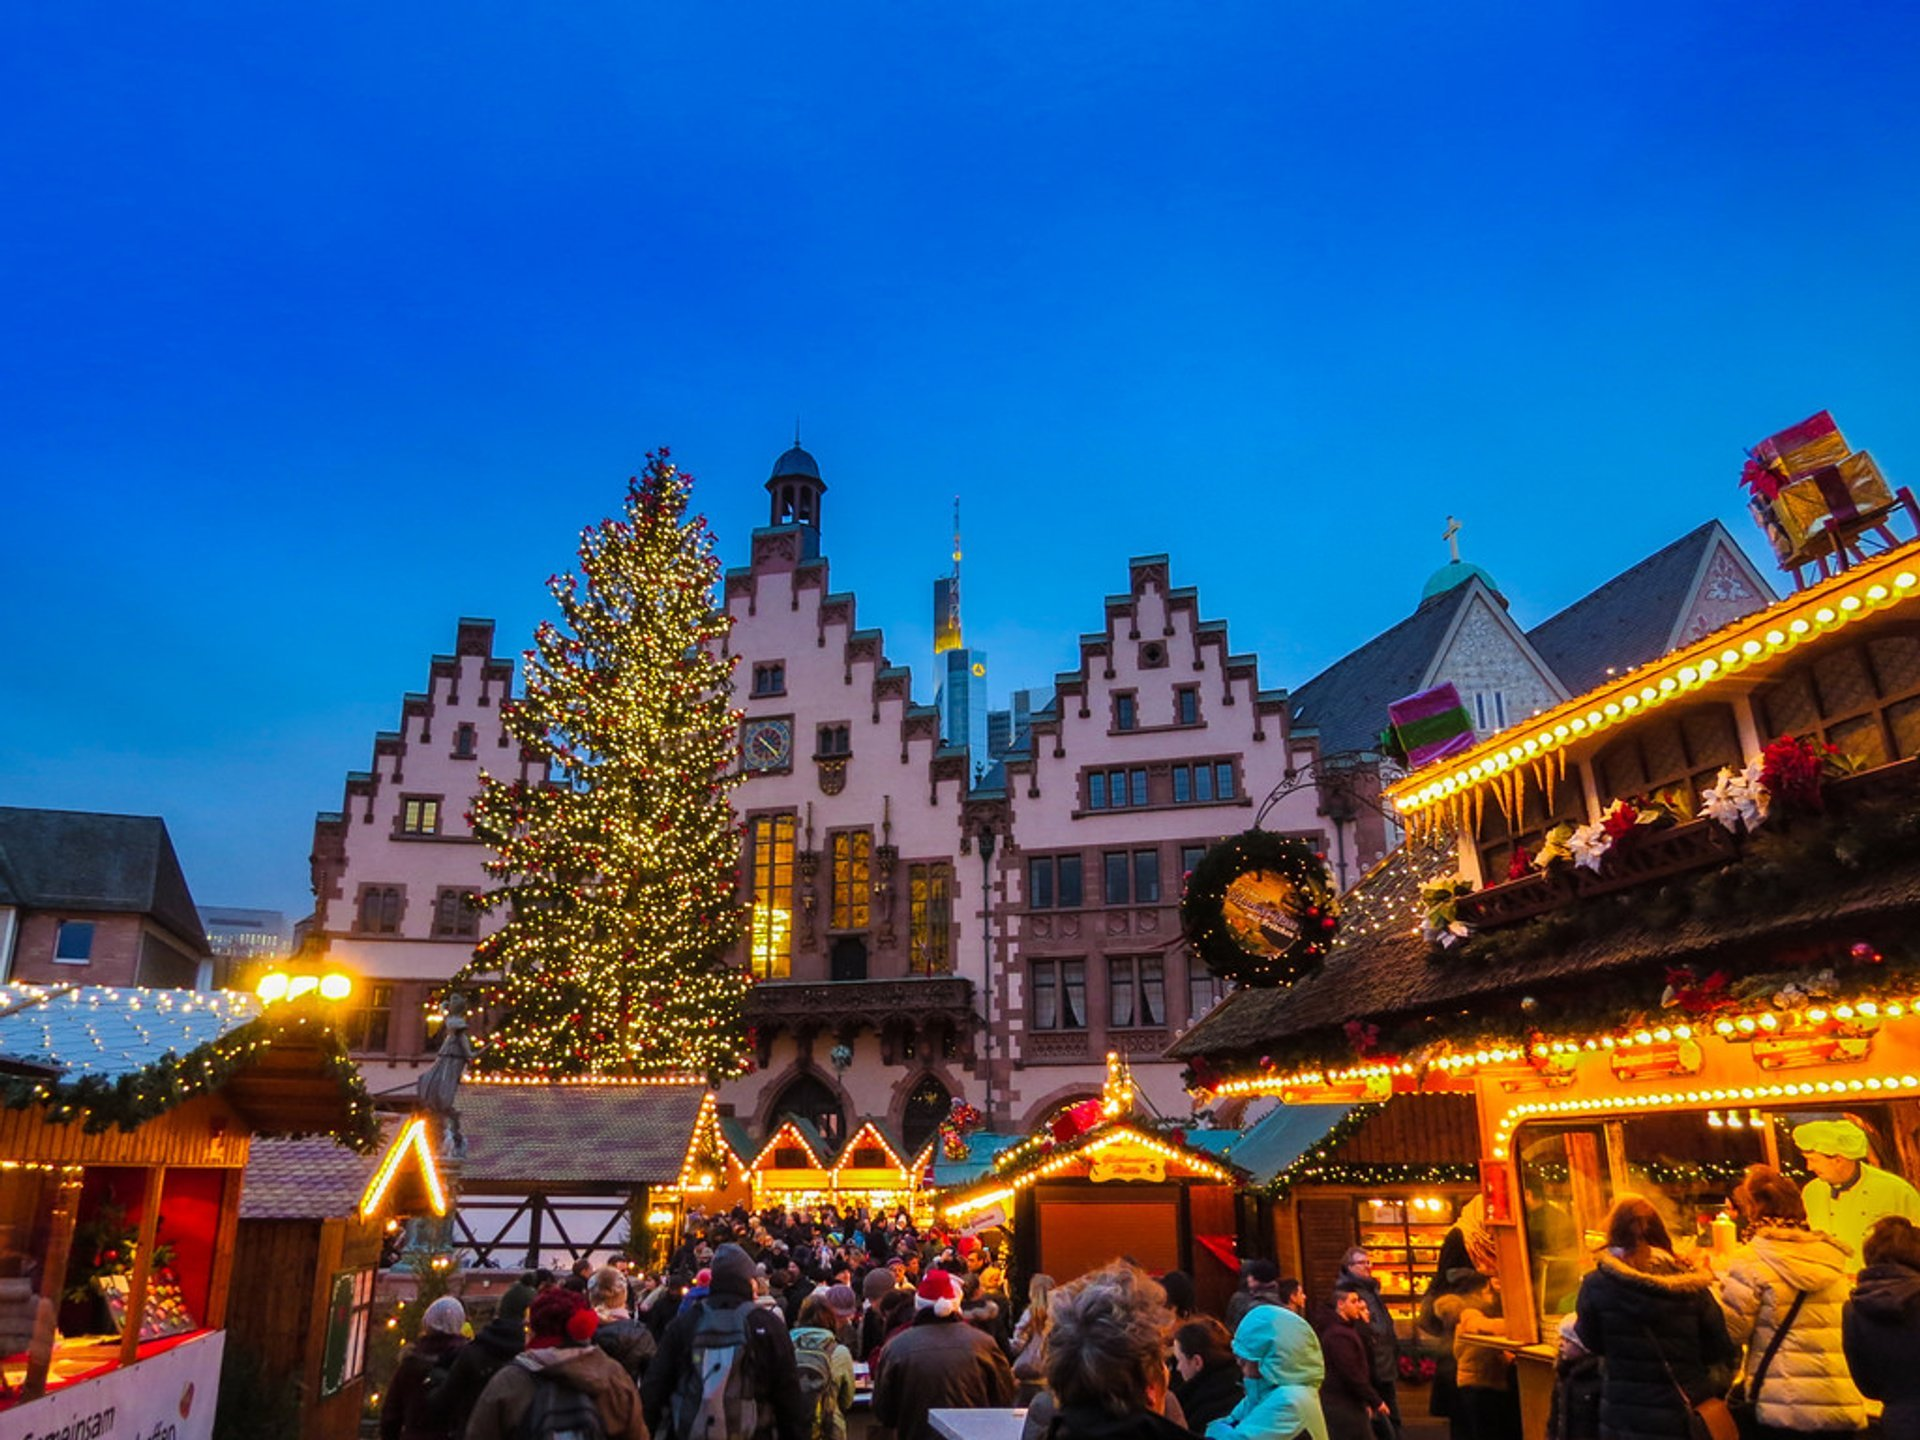 Christmas Markets In Germany 2019.Christmas Markets 2019 2020 In Germany Dates Map